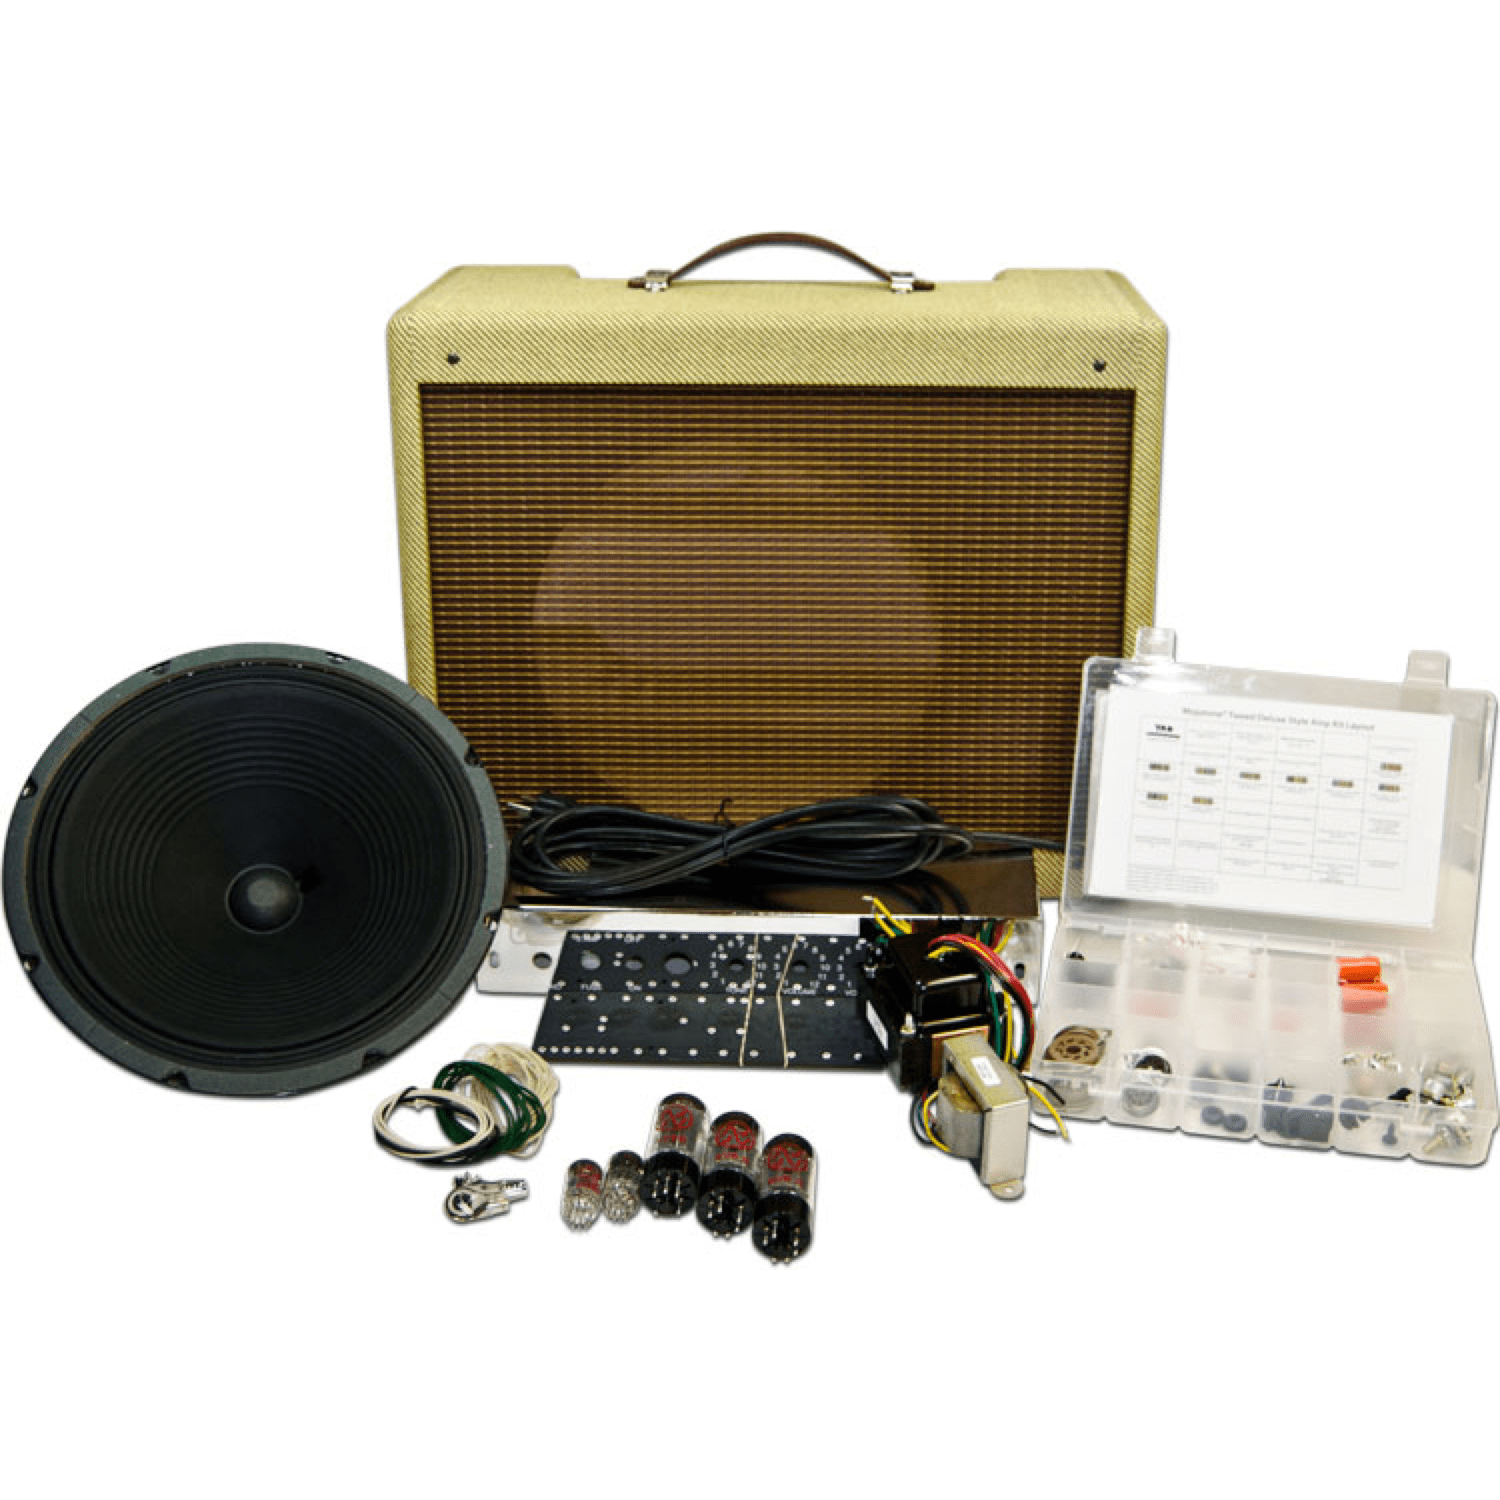 guitar amp kit